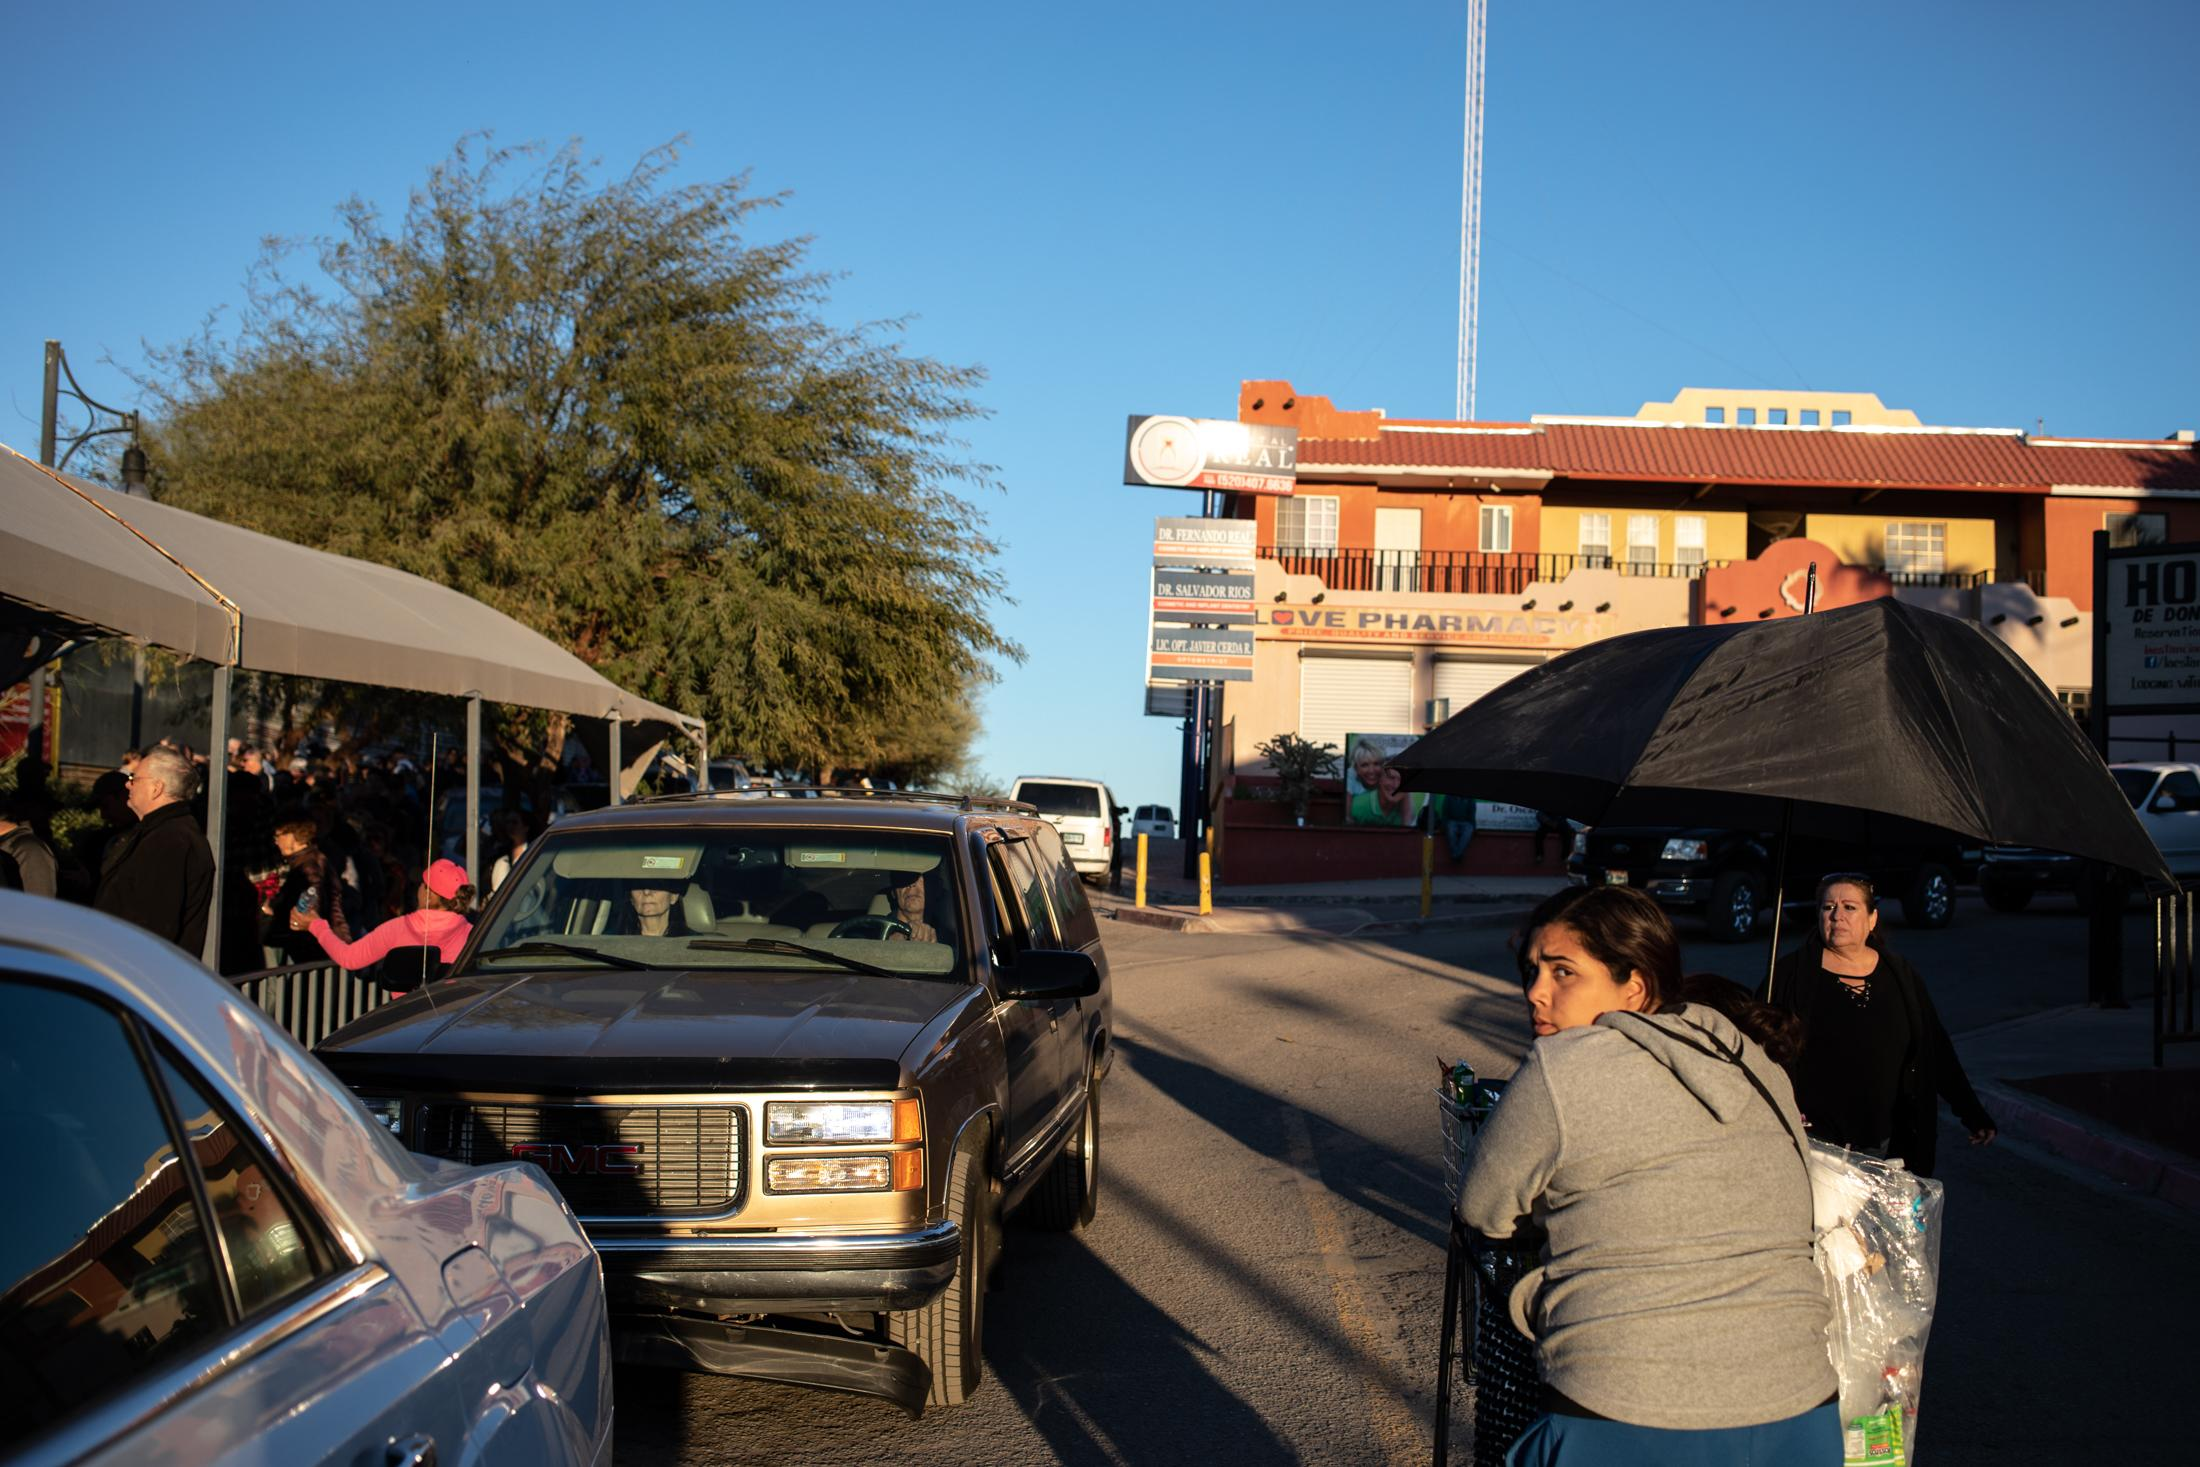 During the long wait in line to cross the border back to the U.S., street vendors sell souvenirs and food.